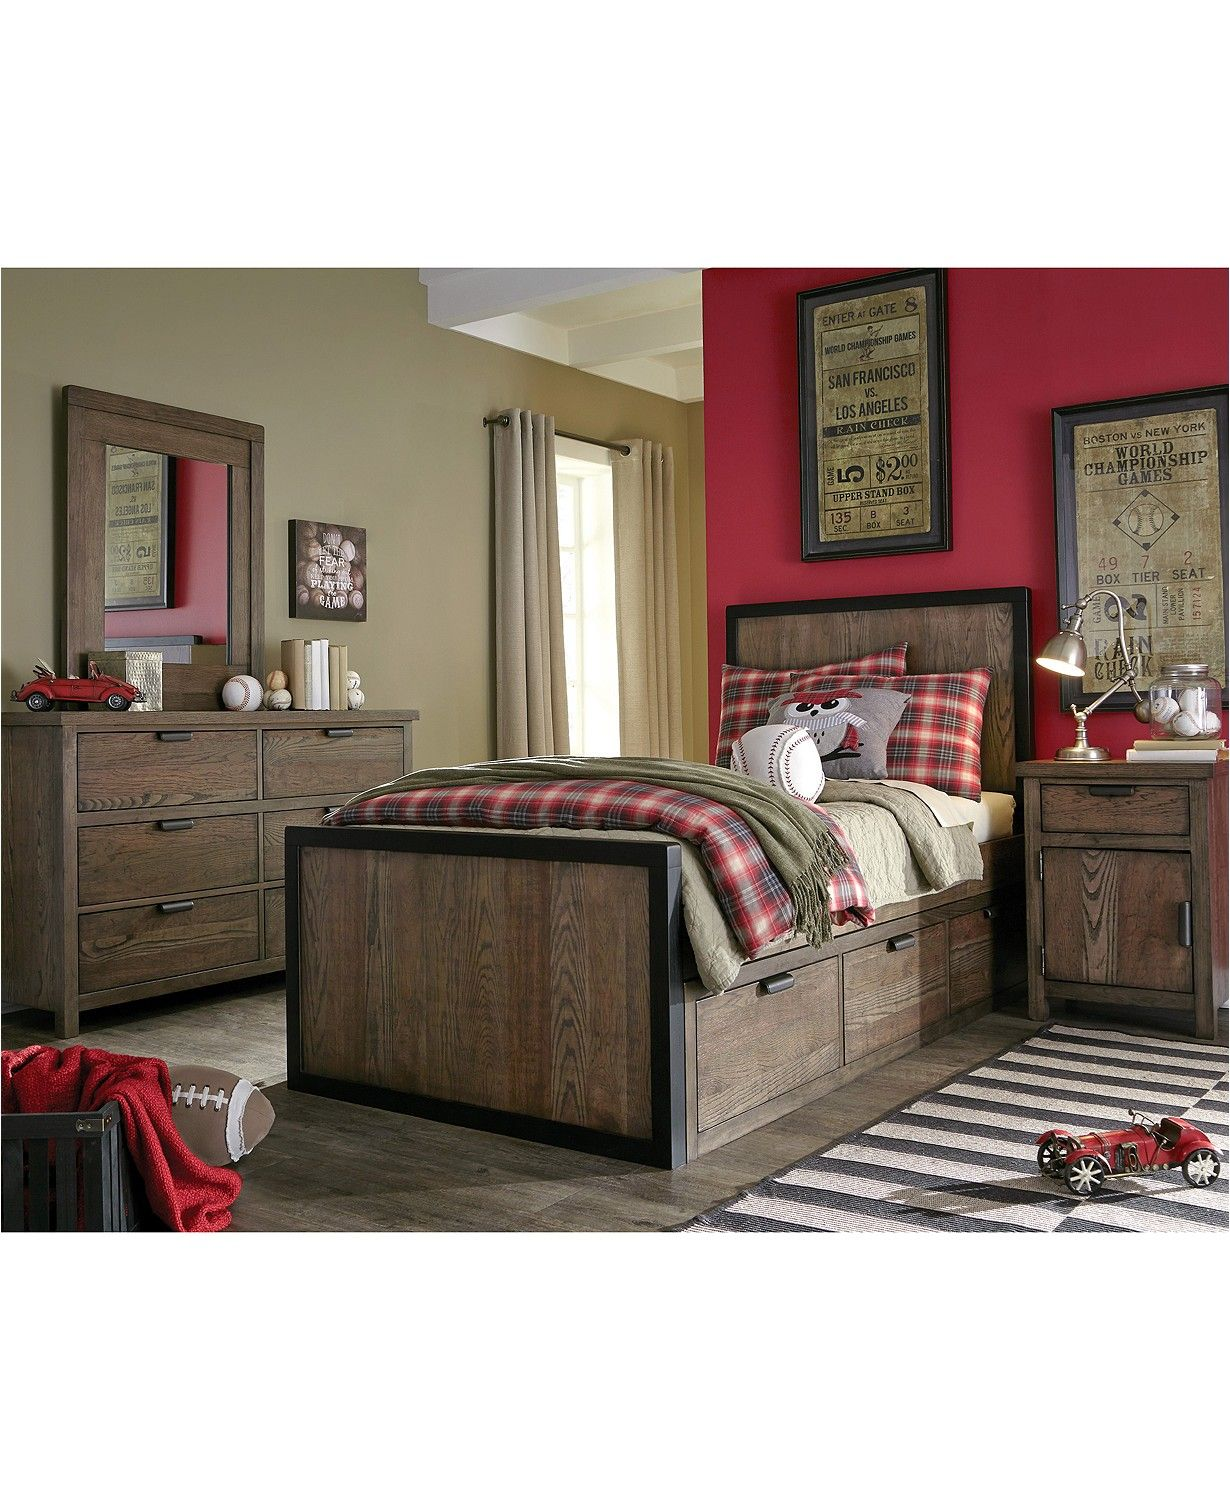 fulton county kids bedroom furniture collection in 2019 boy s room rh pinterest com